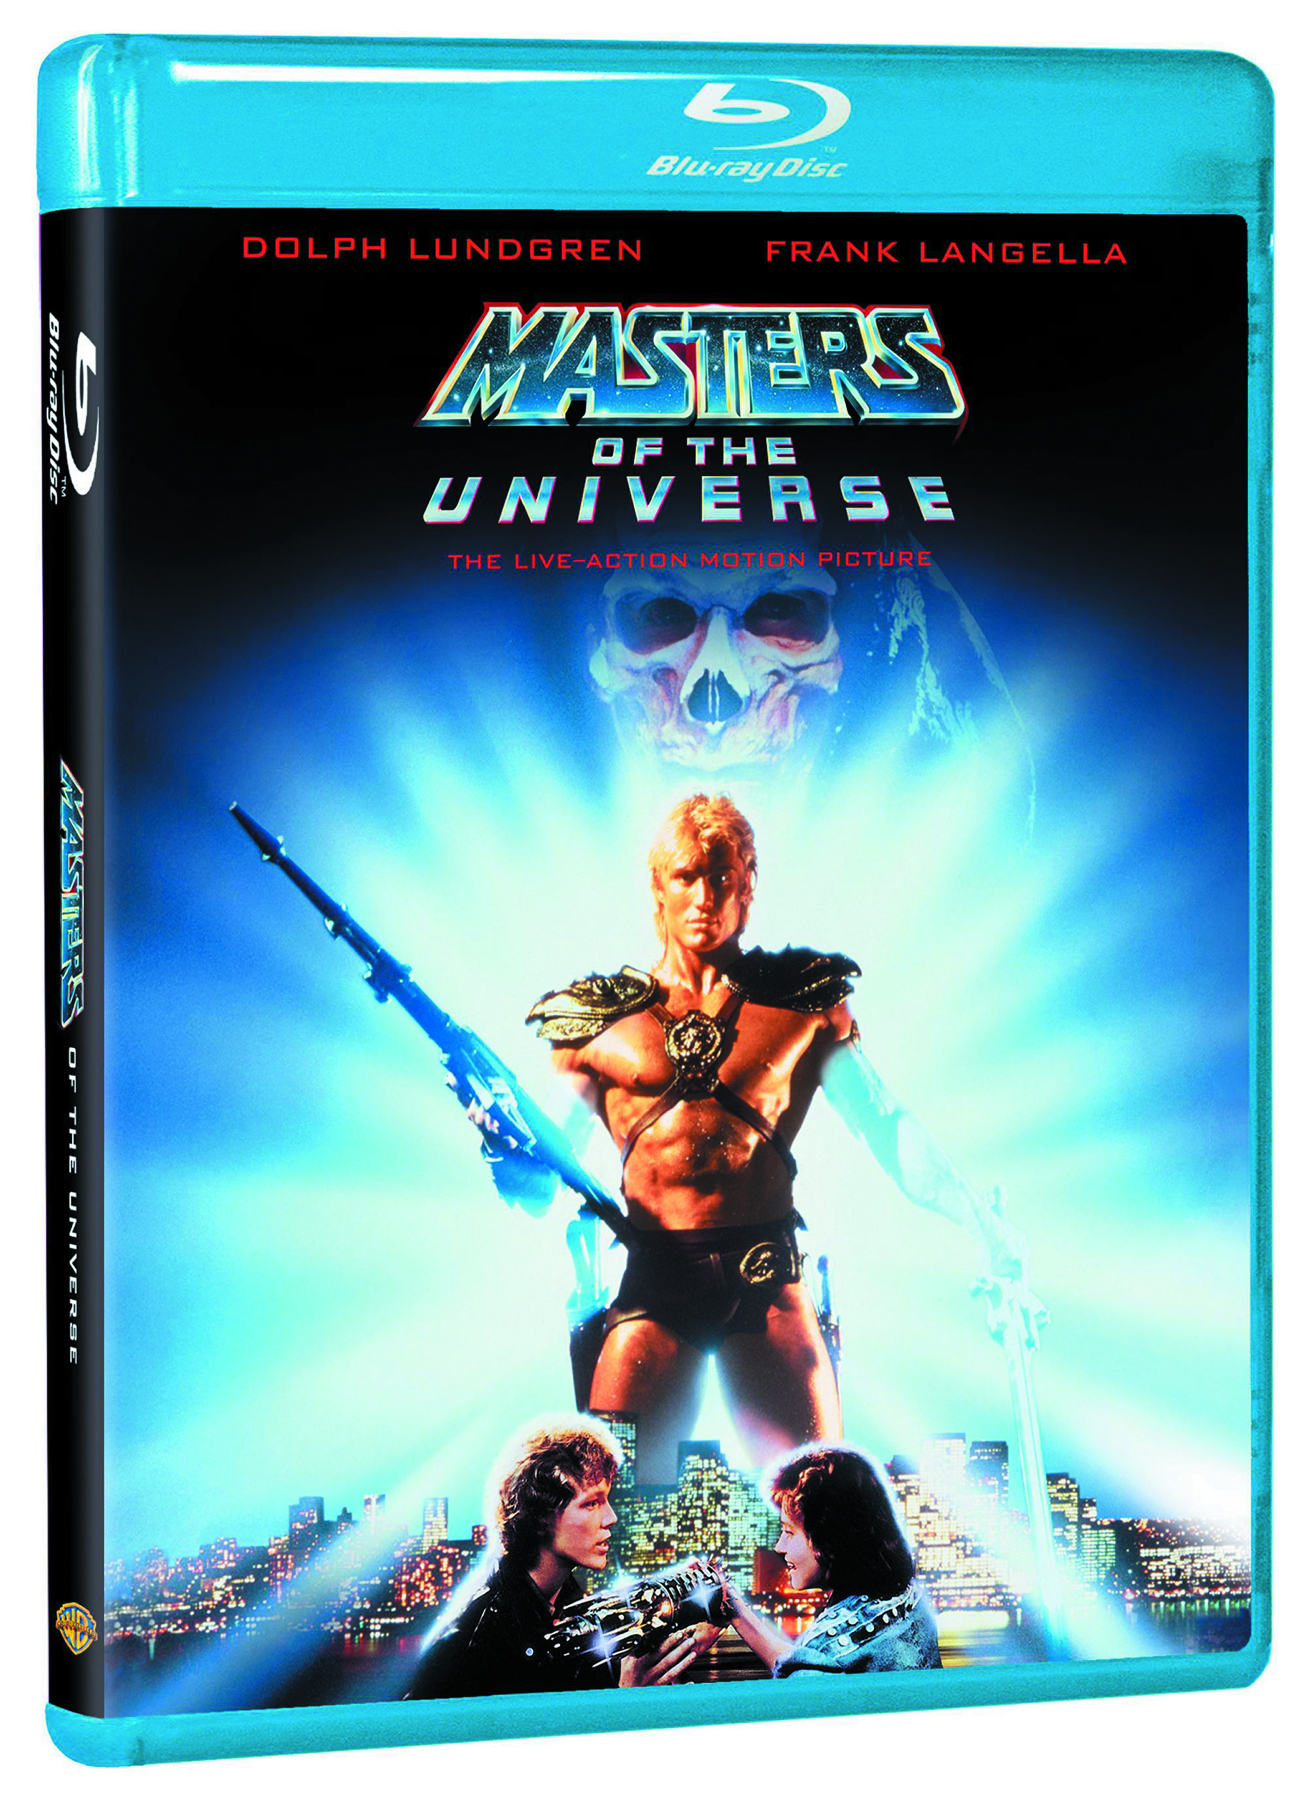 MASTERS OF THE UNIVERSE BD